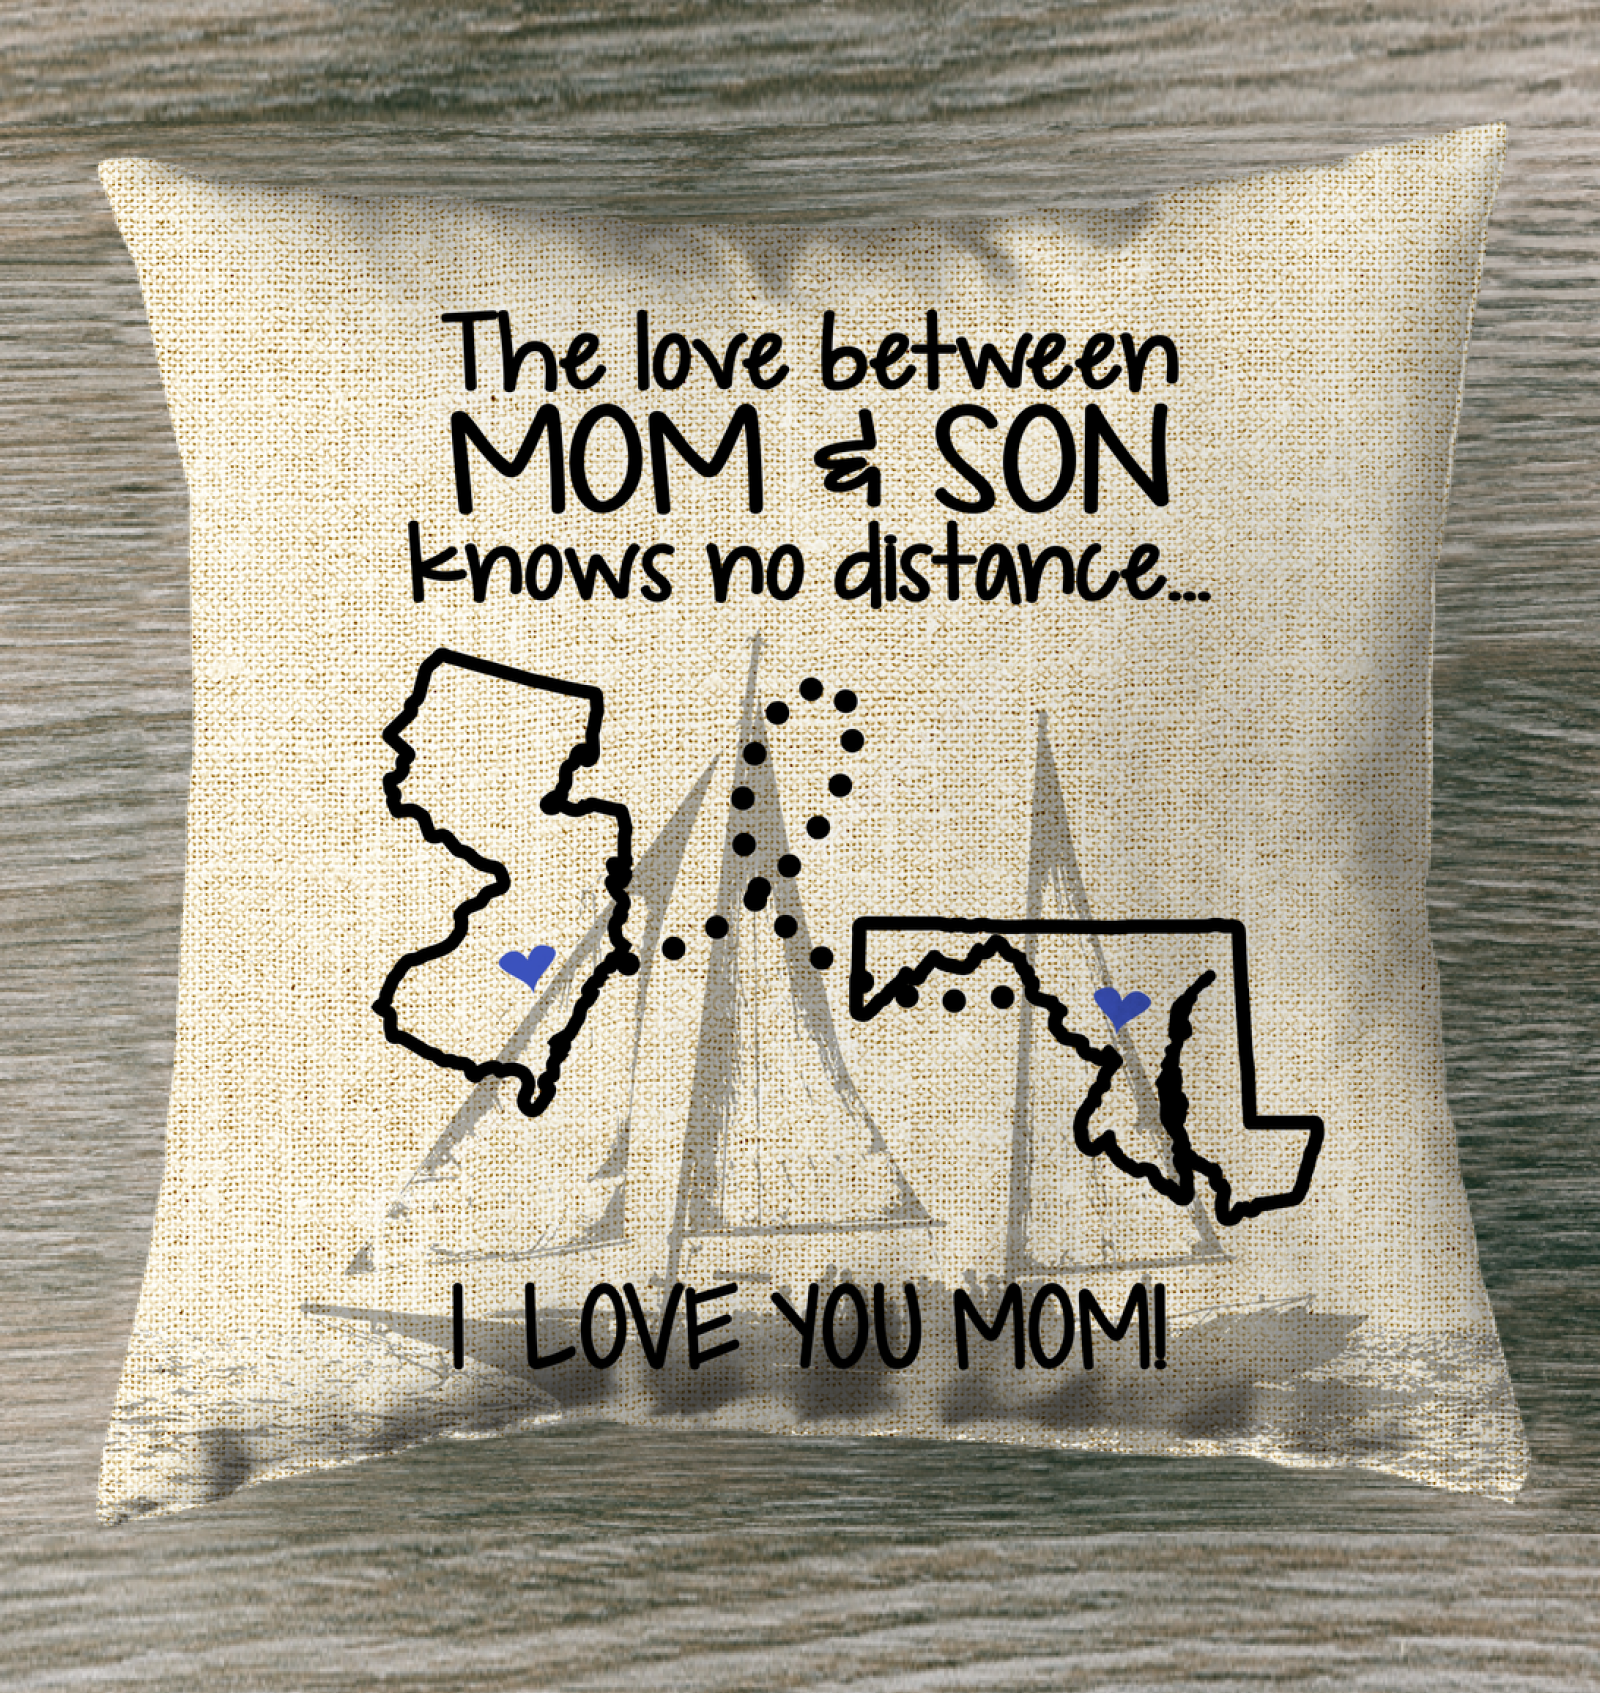 MARYLAND JERSEY THE LOVE MOM AND SON KNOWS NO DISTANCE